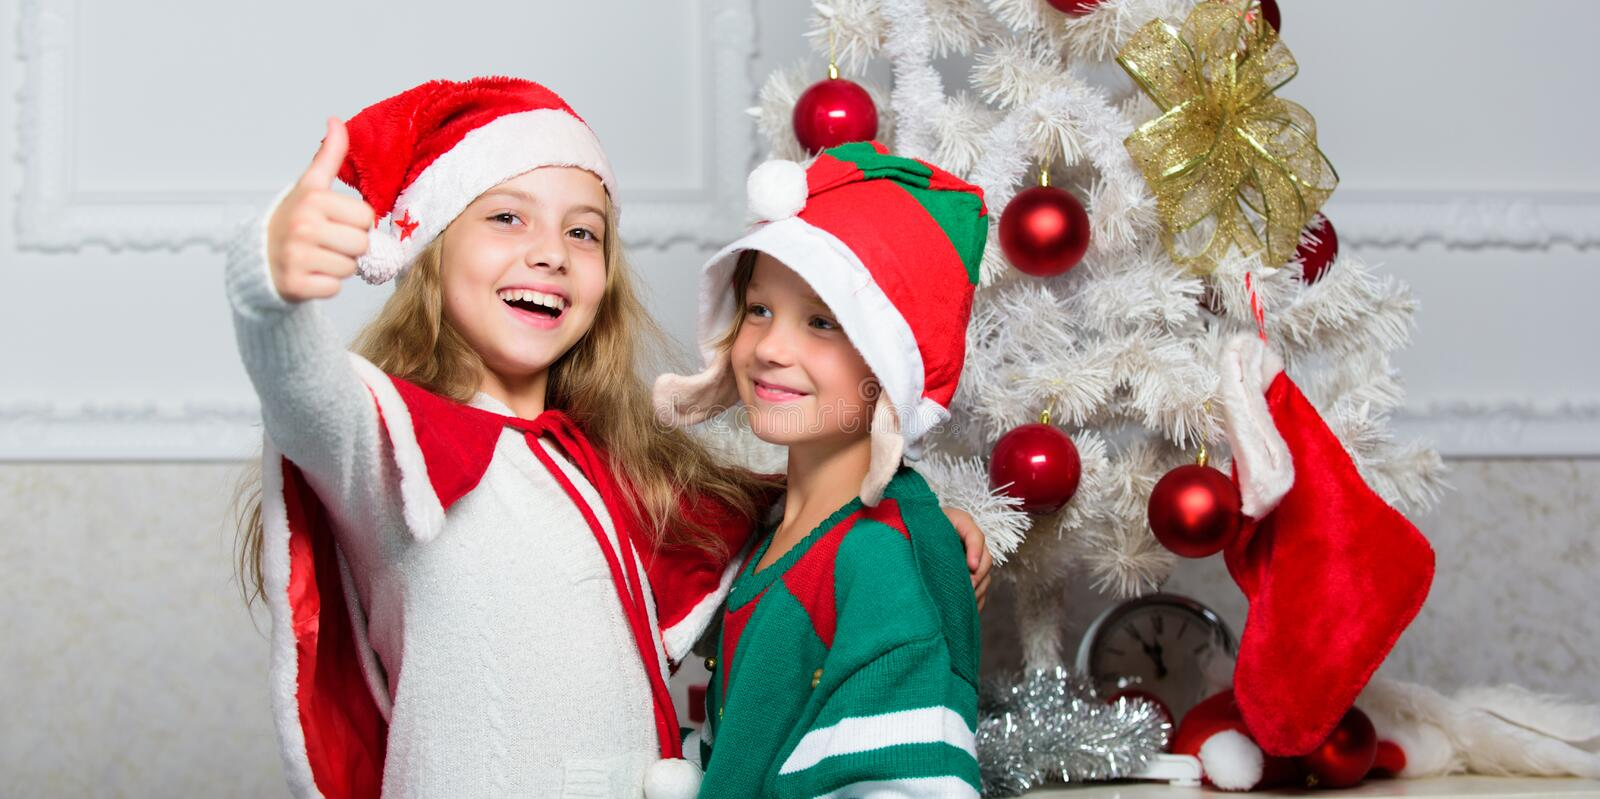 Family holiday tradition. Children cheerful celebrate christmas. Kids christmas costumes santa and elf. Winter stock photography